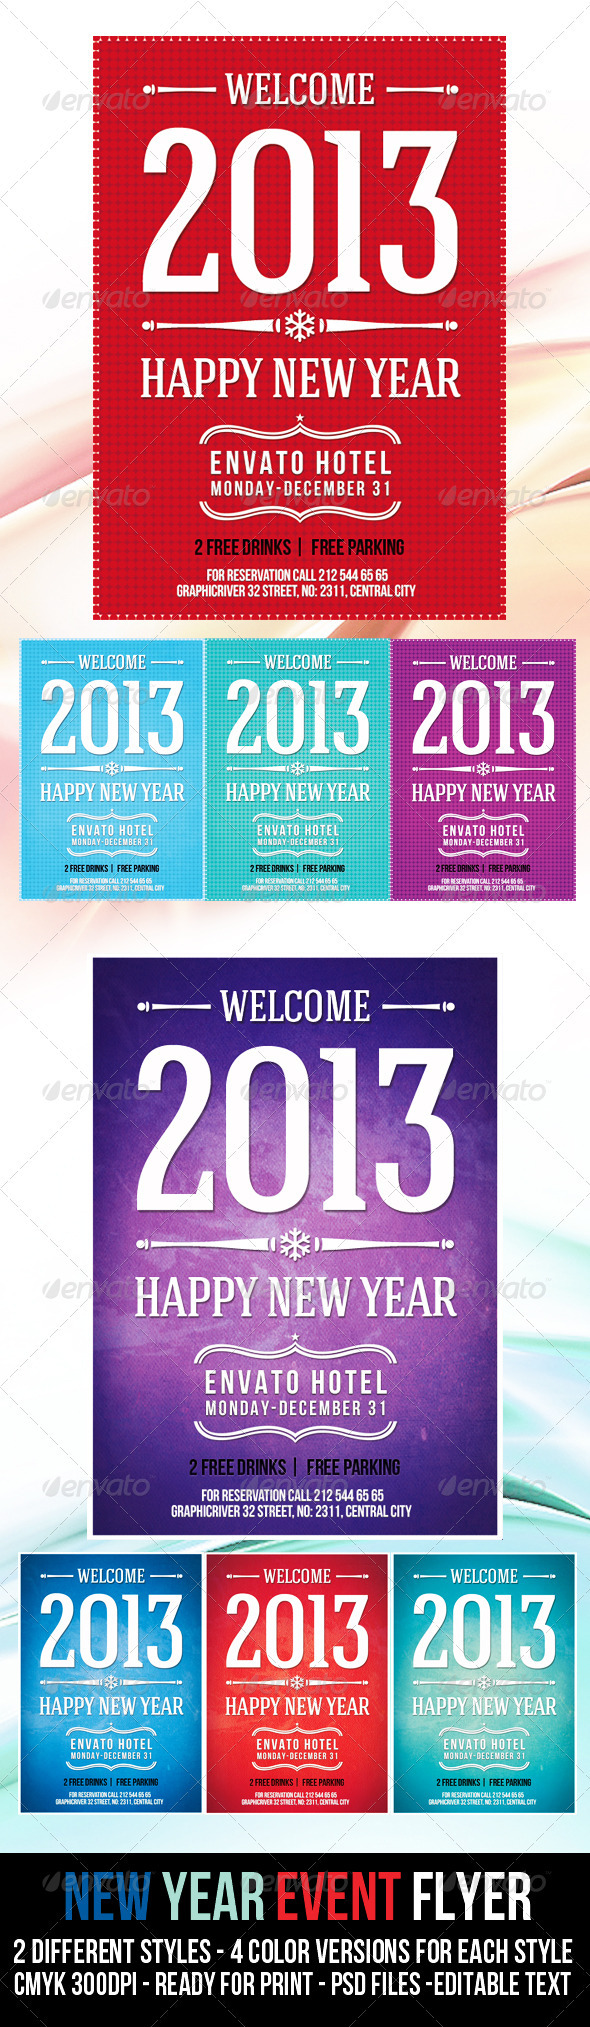 GraphicRiver New Year Event Flyer 3651230